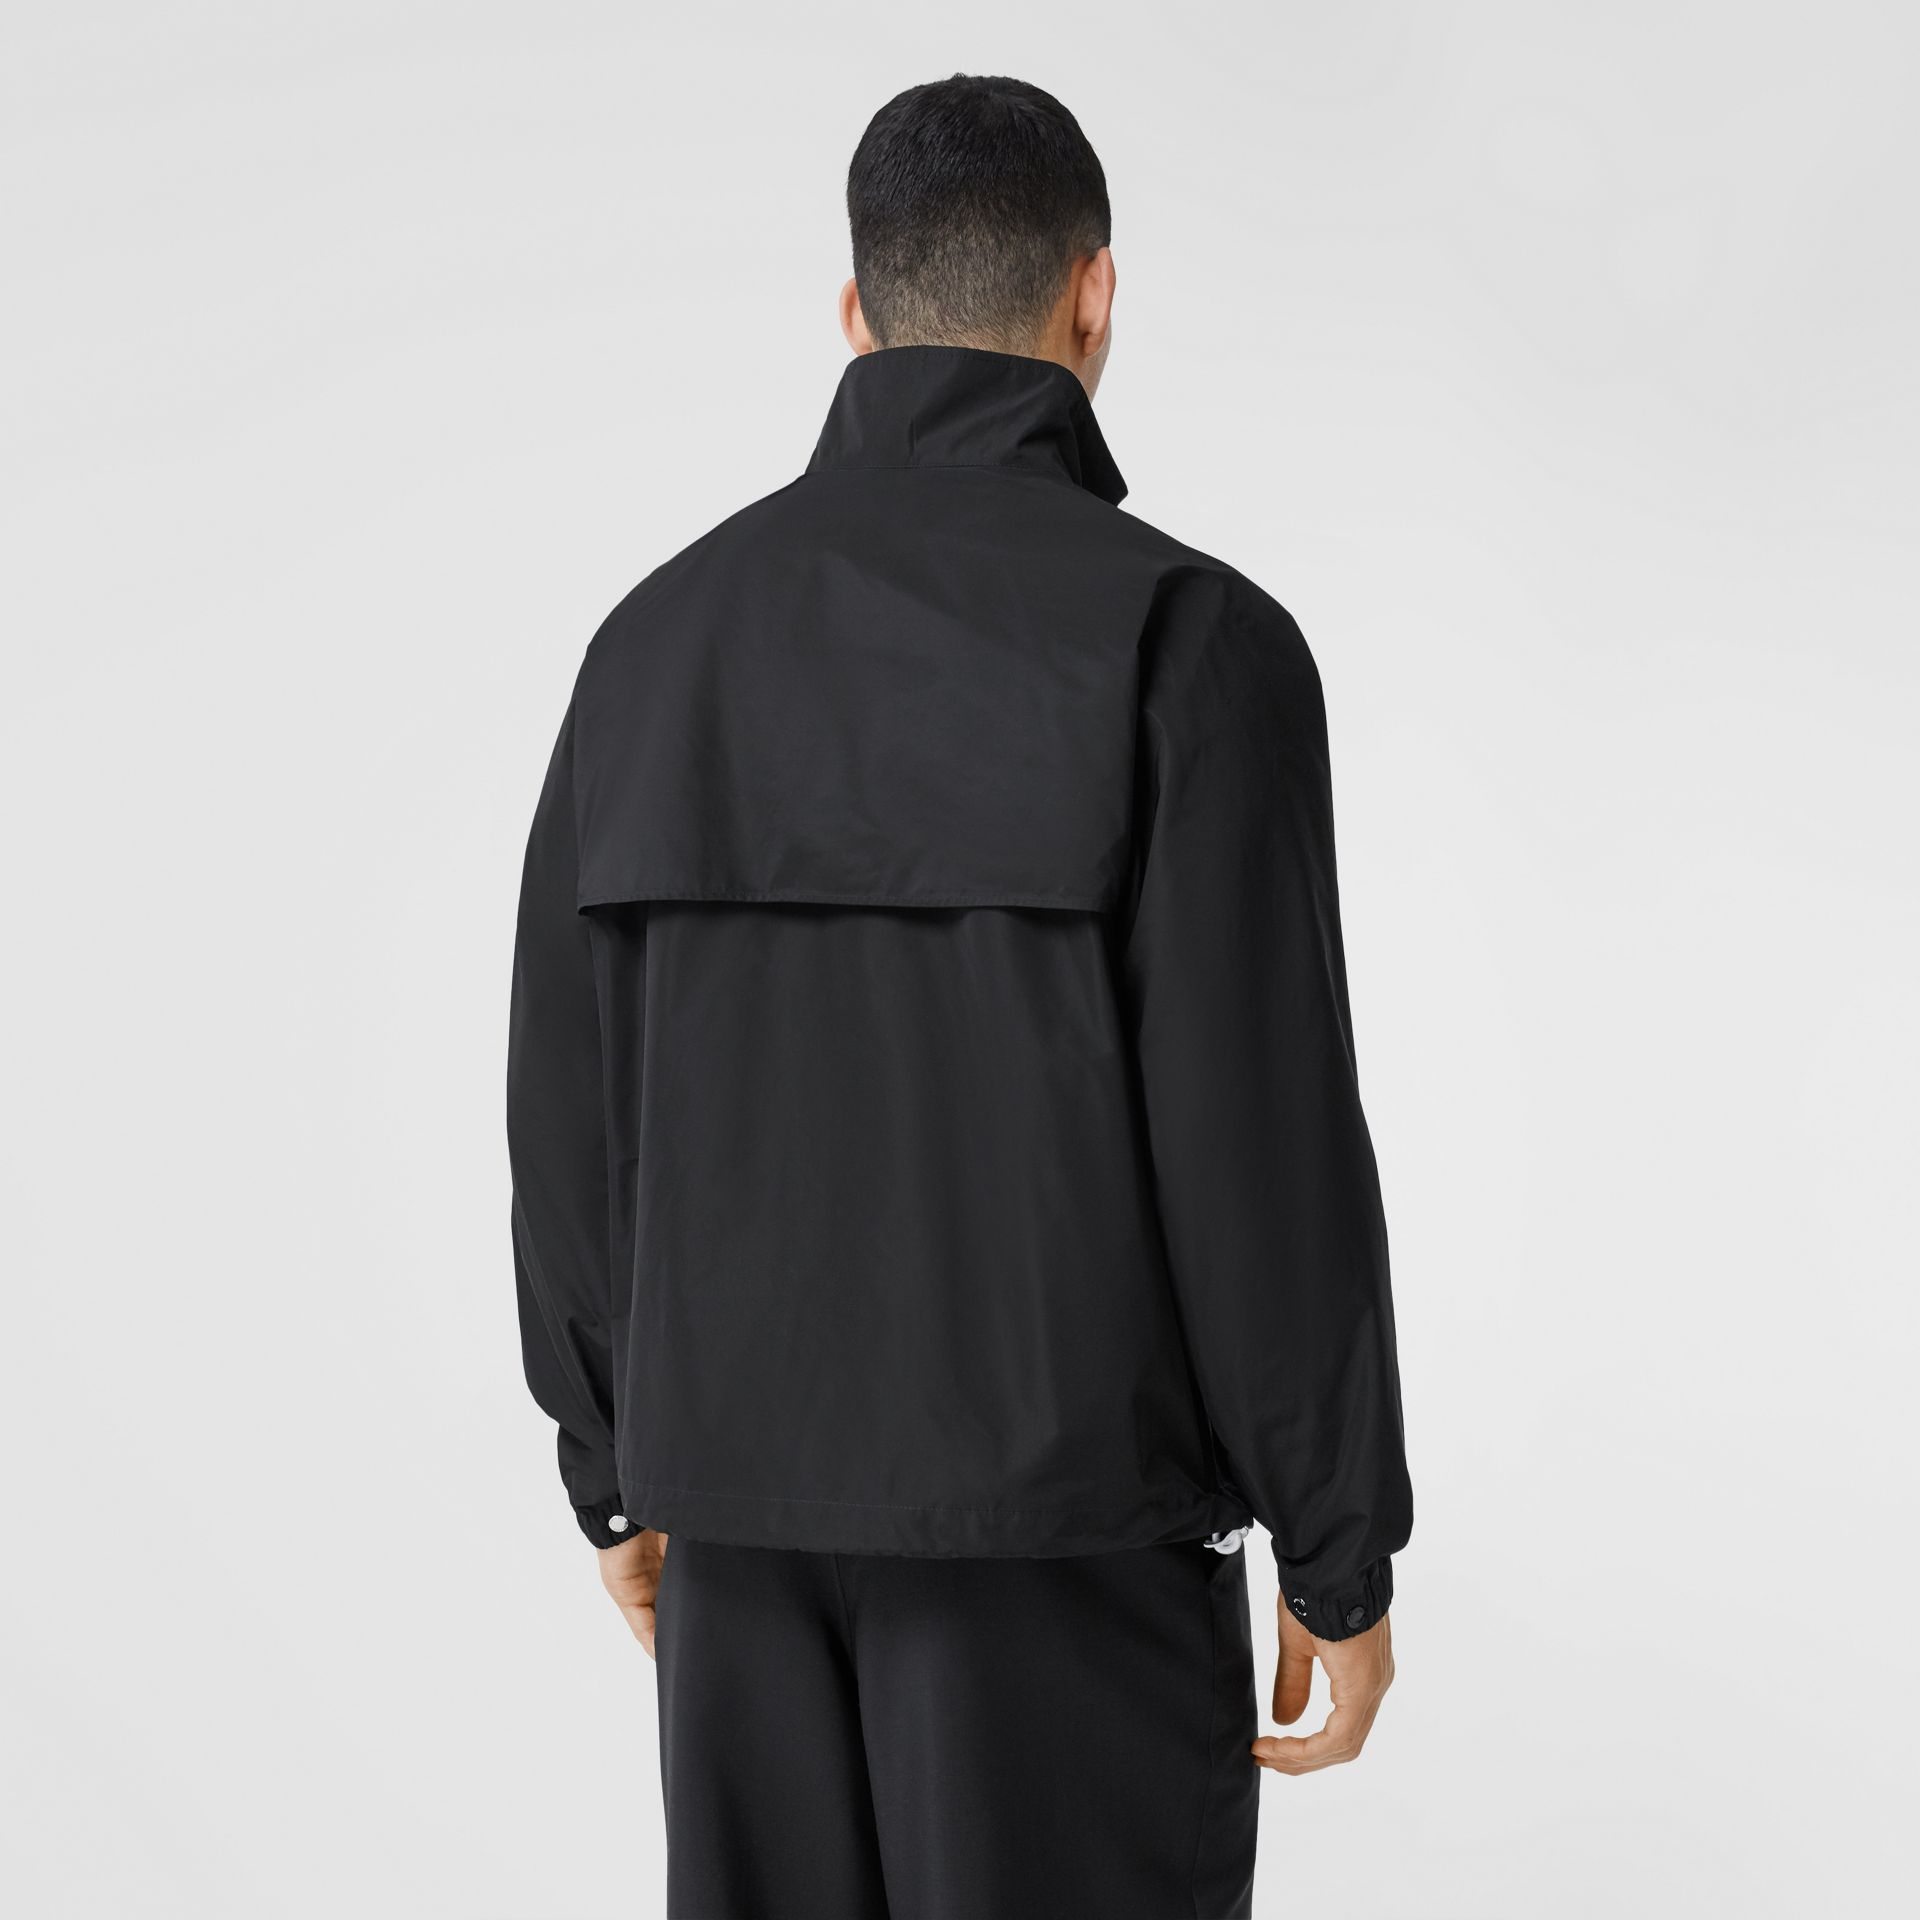 Globe Graphic Shape-memory Taffeta Jacket in Black - Men | Burberry Hong Kong S.A.R - gallery image 2